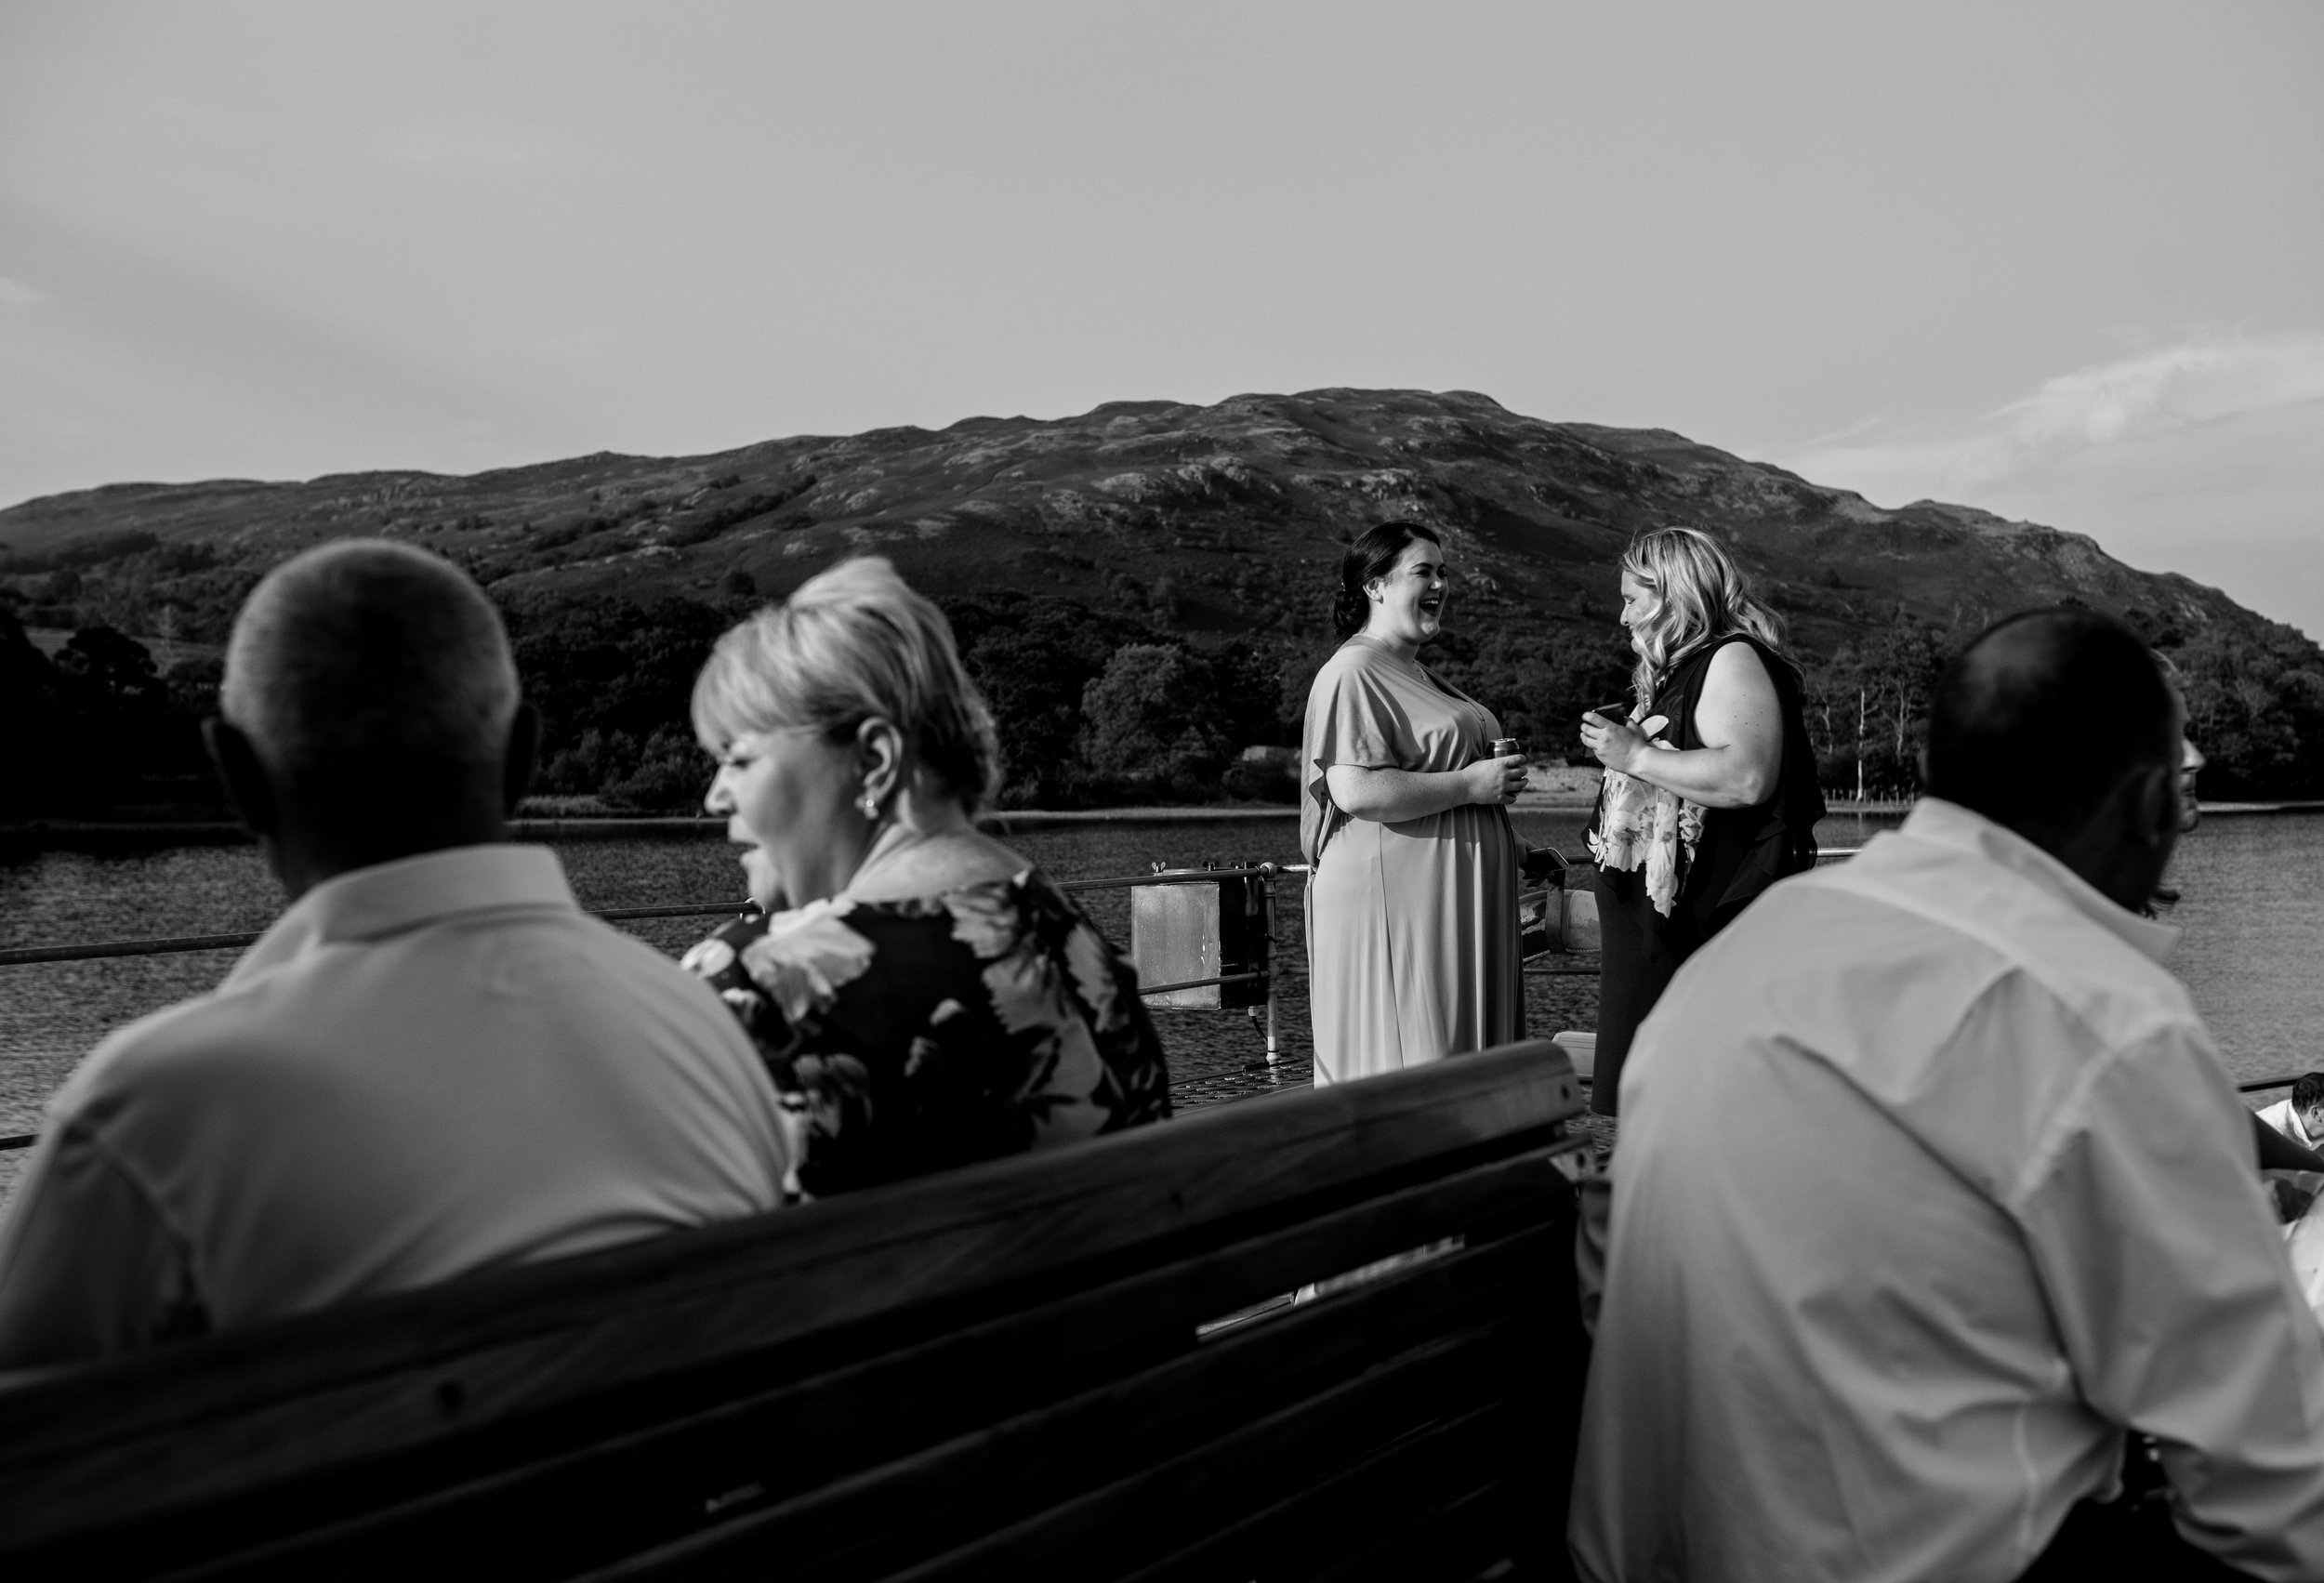 A couple of wedding guests stand on the boat and chat to each other